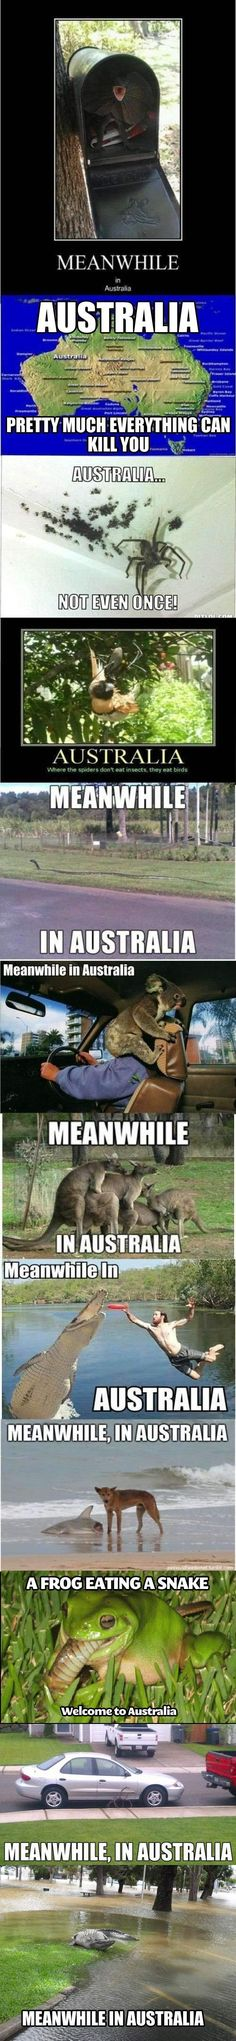 Meanwhile in Australia compilation…I love Australia, but that definitely creeps me out!!